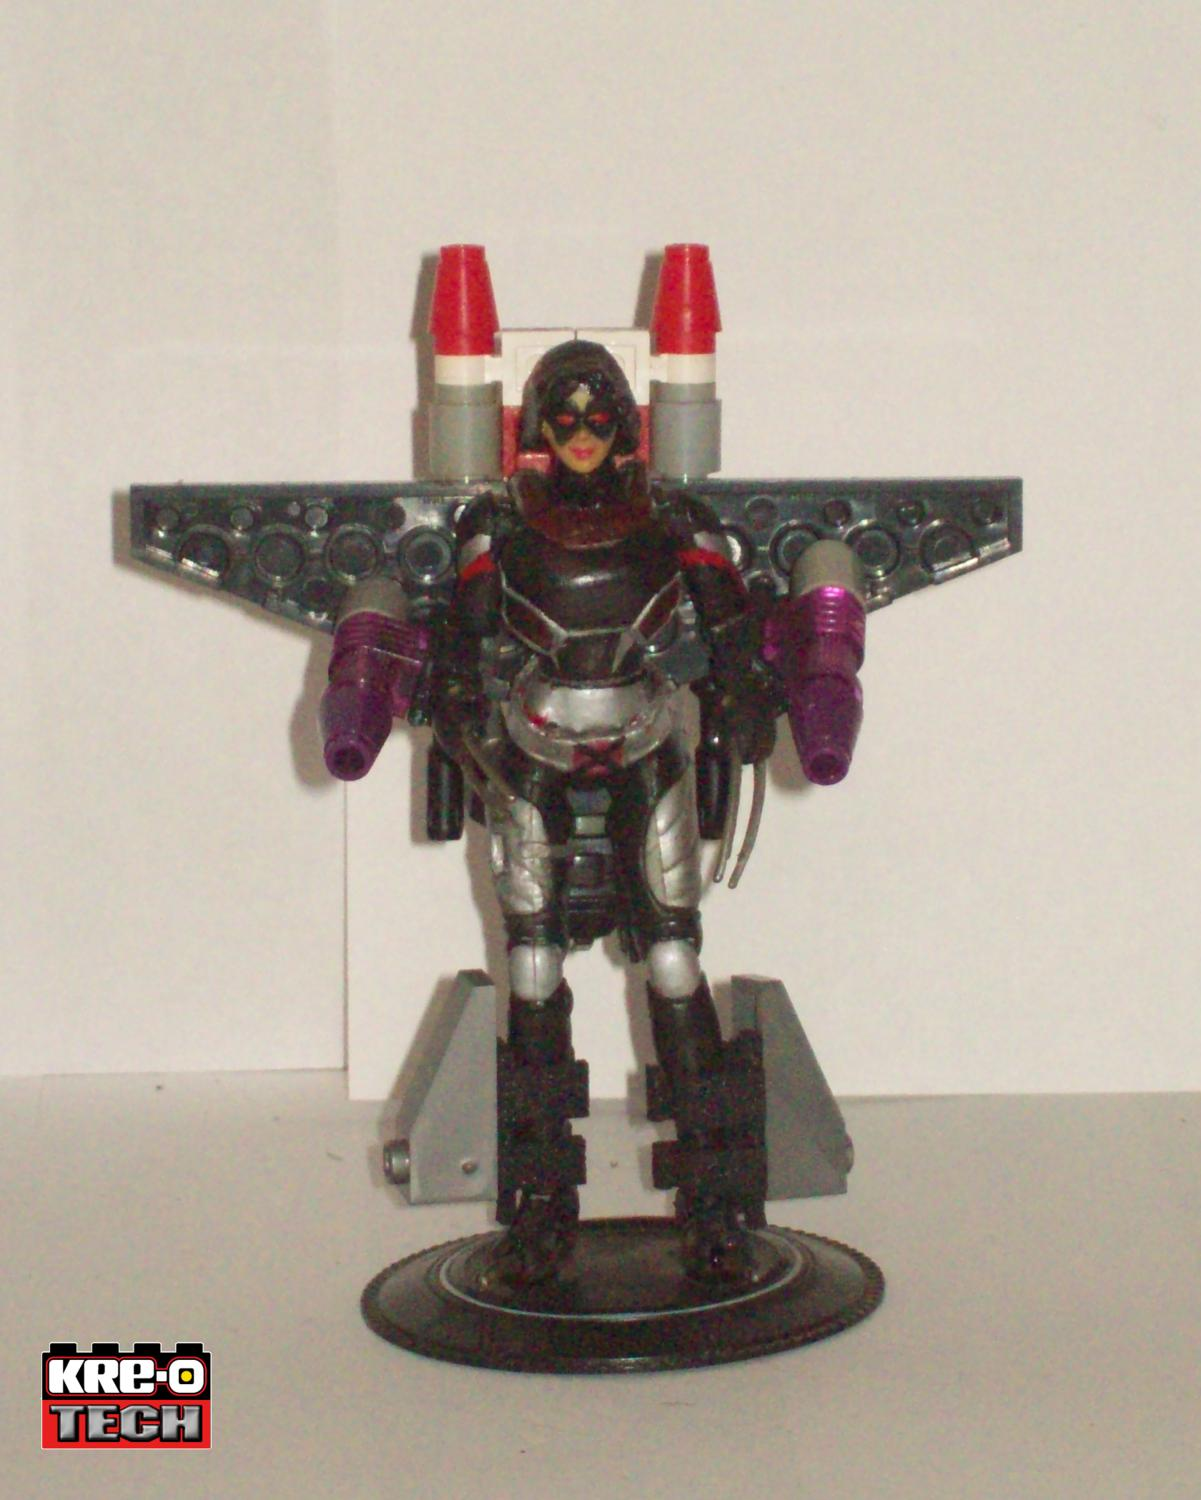 Kre-O Tech-kre-o-tech-x-force-x-23-test-prototype-suit.jpg